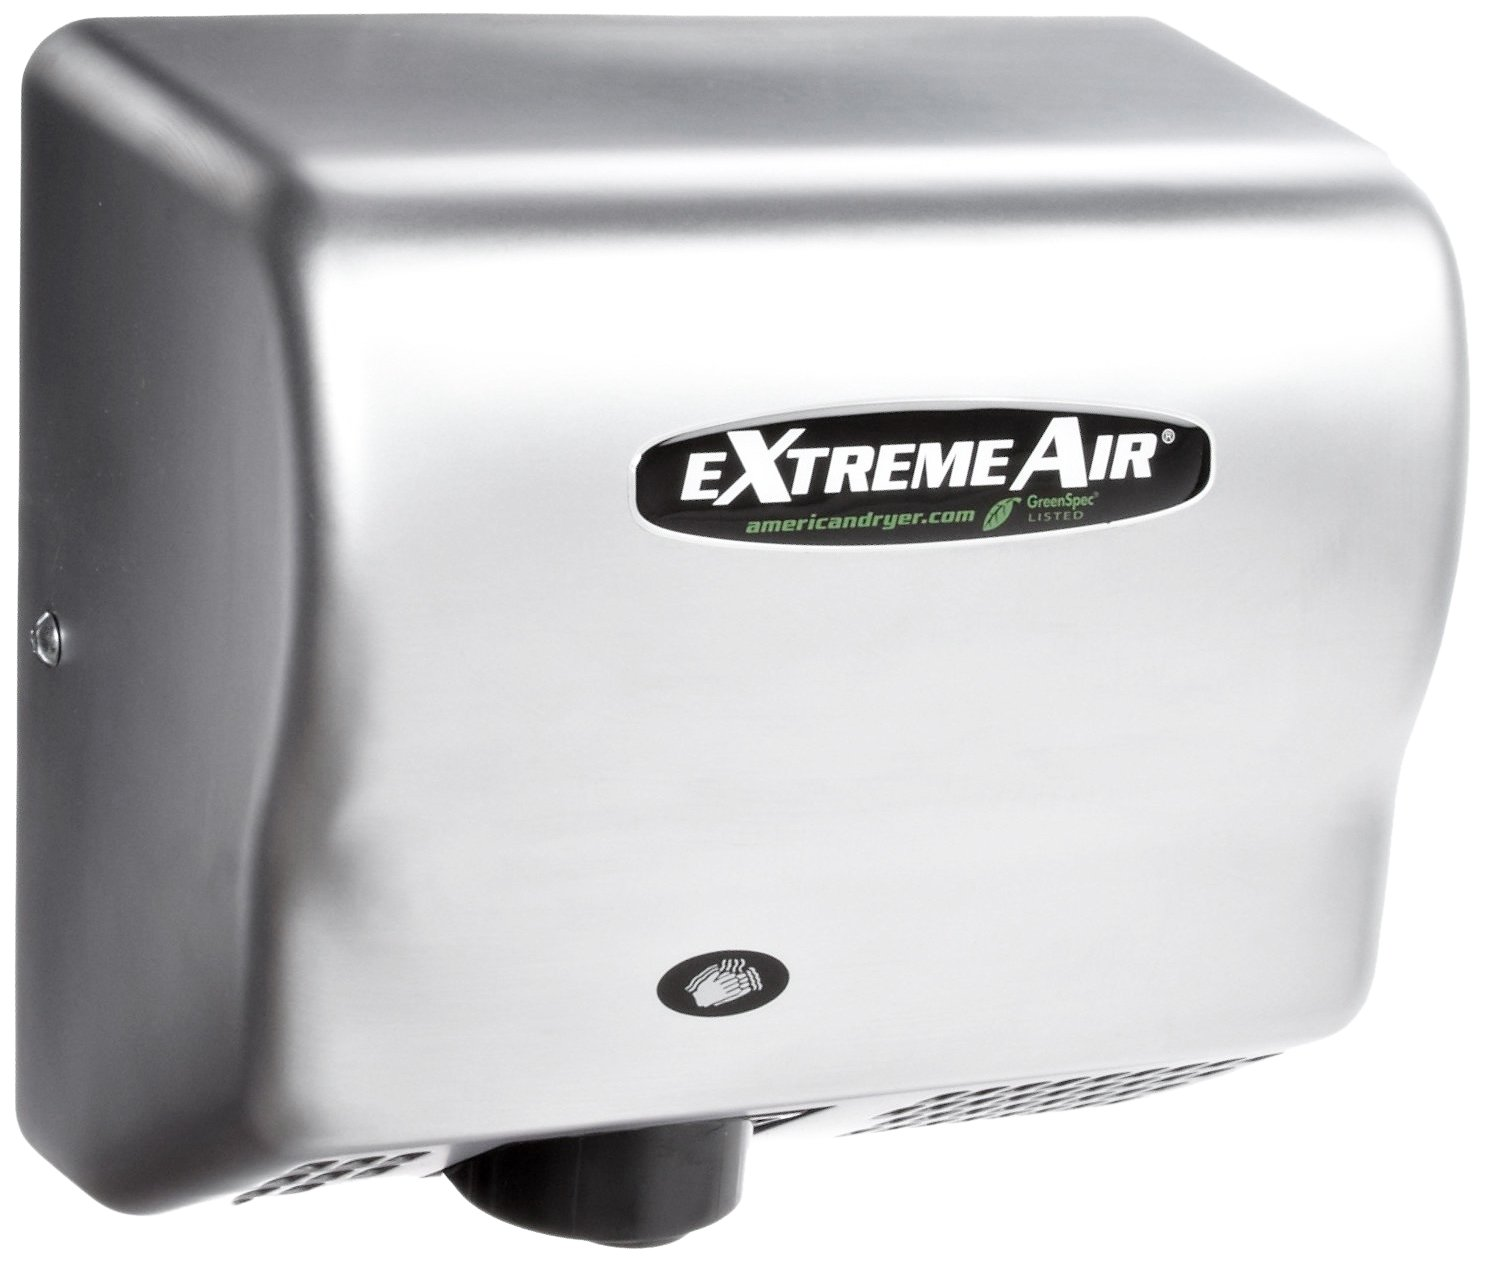 Image of Hand Dryers American Dryer ExtremeAir GXT9-SS Stainless Steel Cover High-Speed Automatic Hand Dryer, 10-12 Second Dries, 100-240V, 1,500W Maximum Power, 50/60Hz